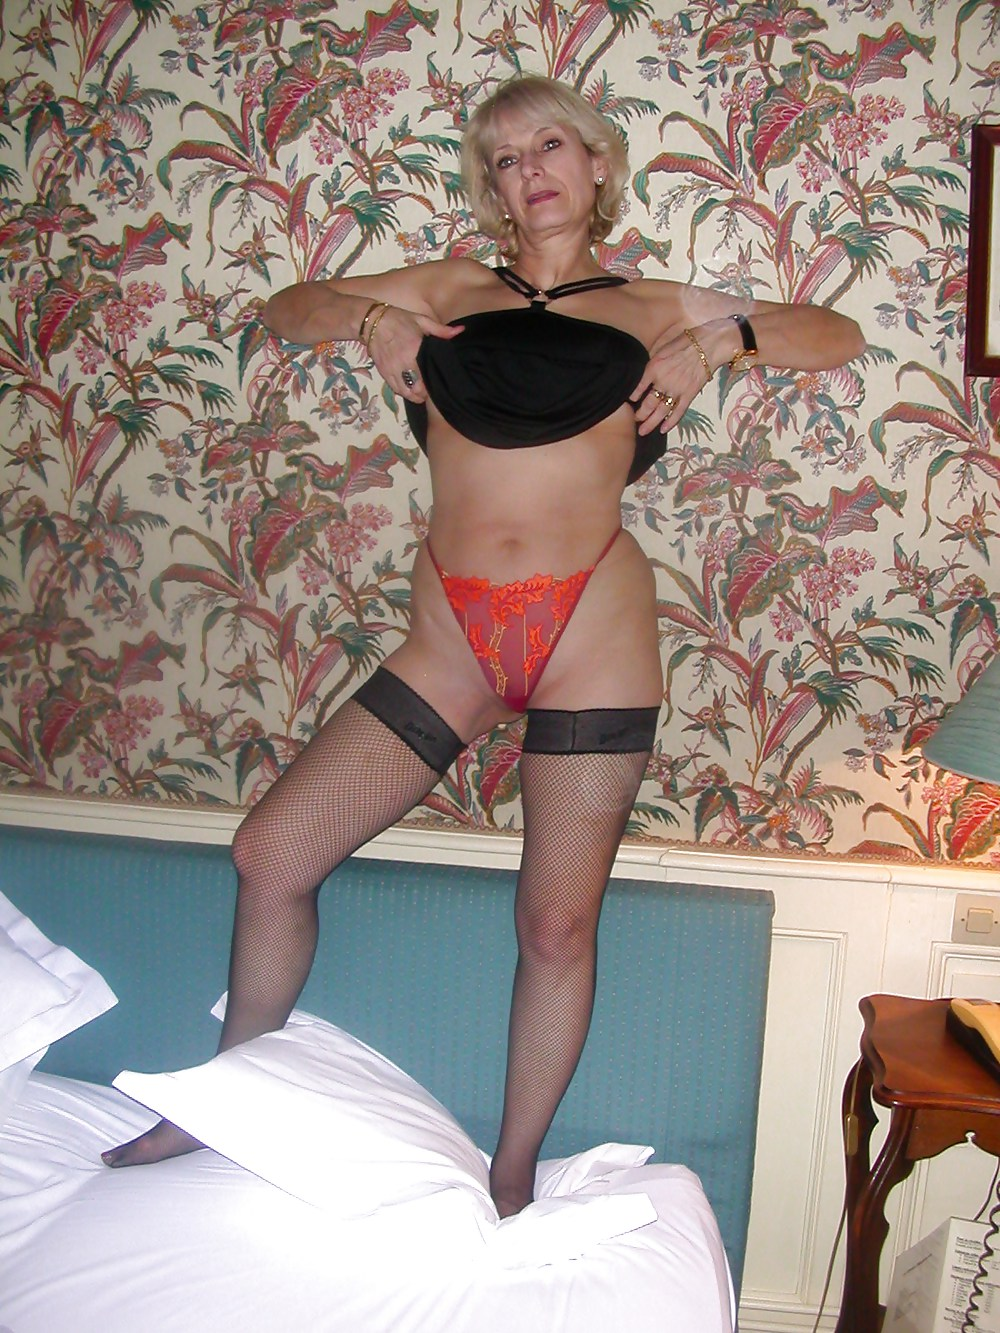 Grannies matures milf housewives amateurs 50 #13663685